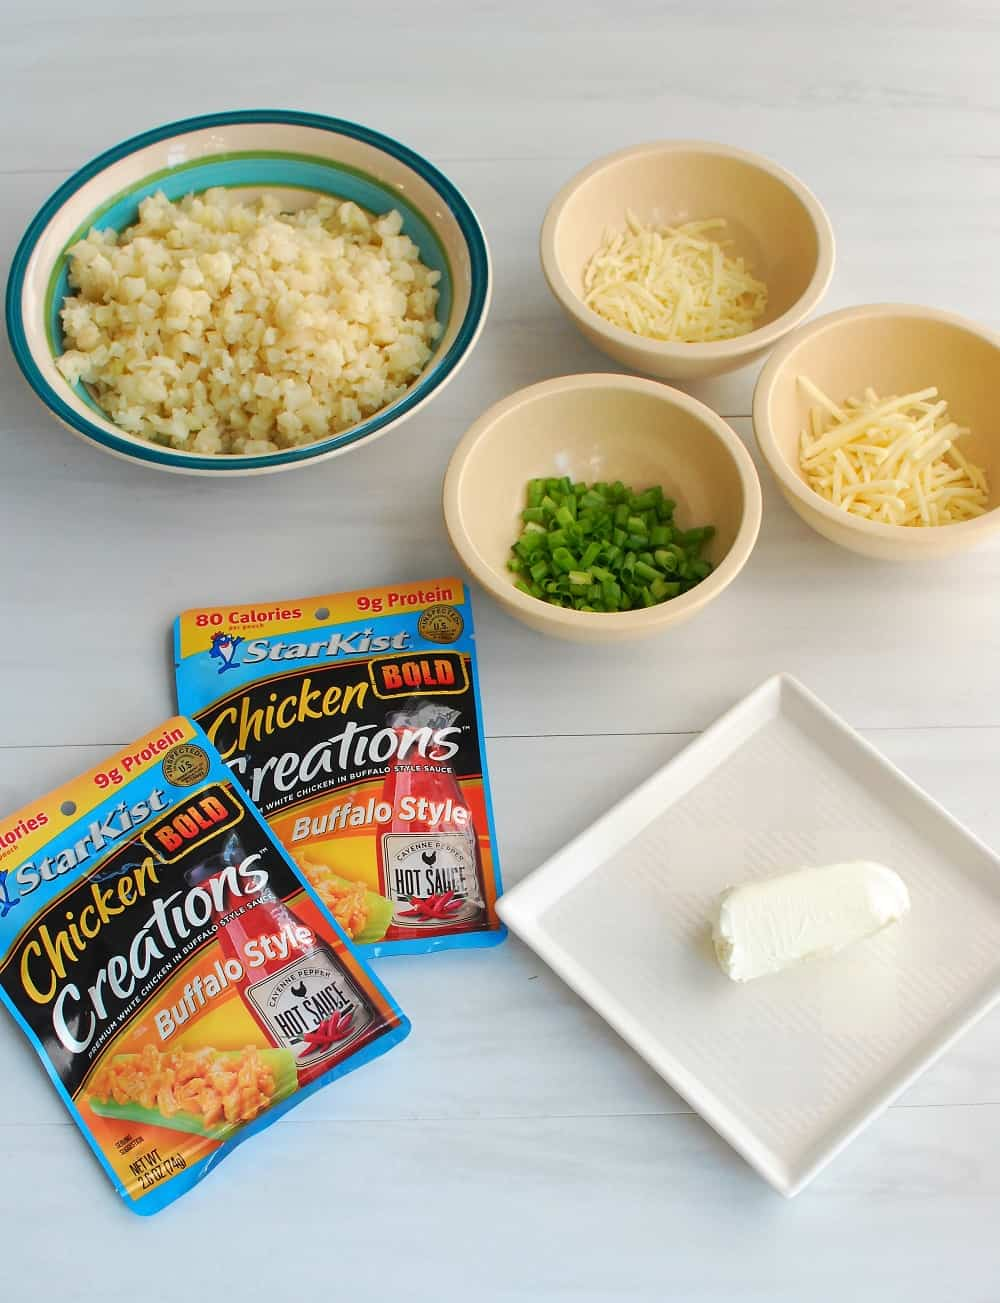 Ingredients to make a buffalo chicken cauliflower rice casserole